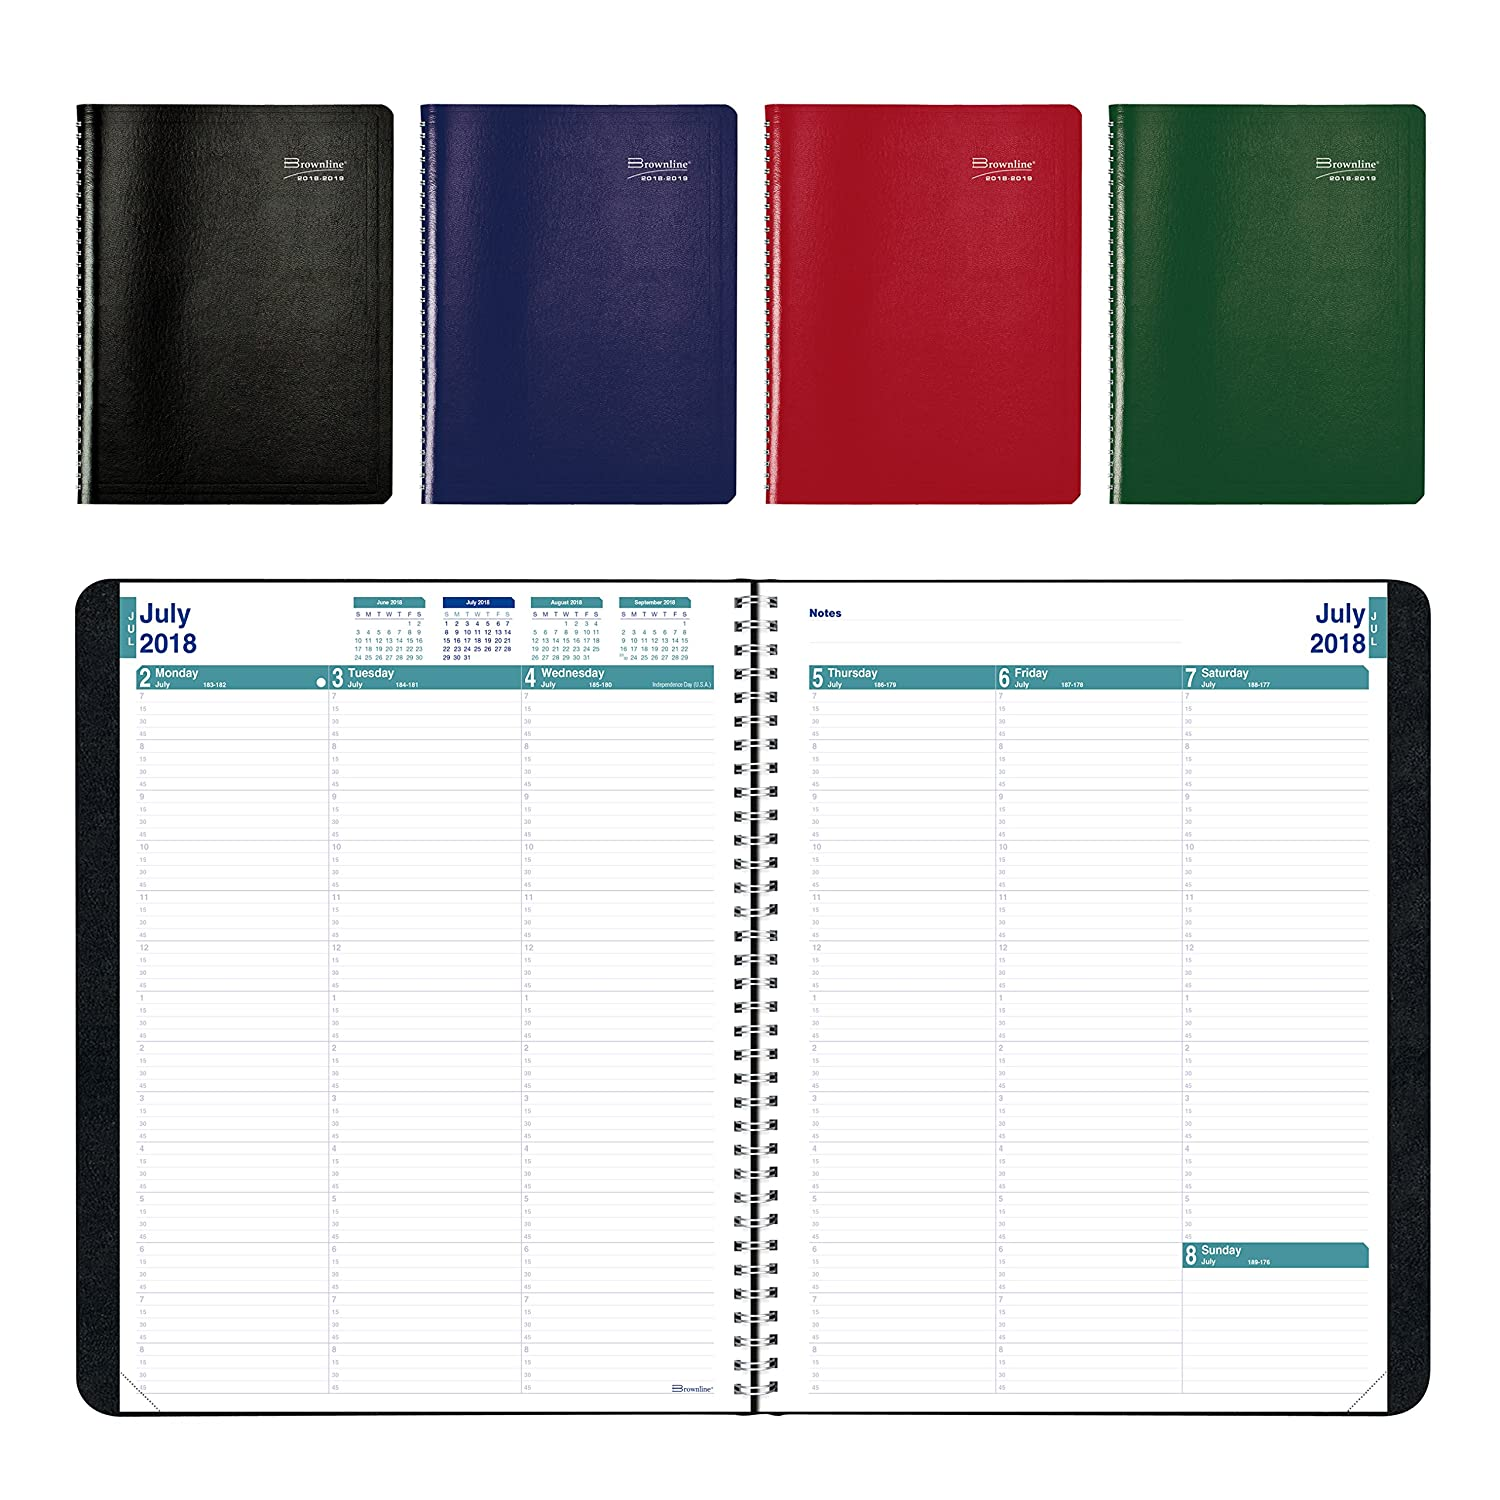 Brownline 2018-2019 Weekly/Monthly Academic Planner with Appointment, 11x8.5, July to July Assorted Colours, English (CA958.ASX-2019) 11x8.5 Blueline Canada CA958.ASX-19